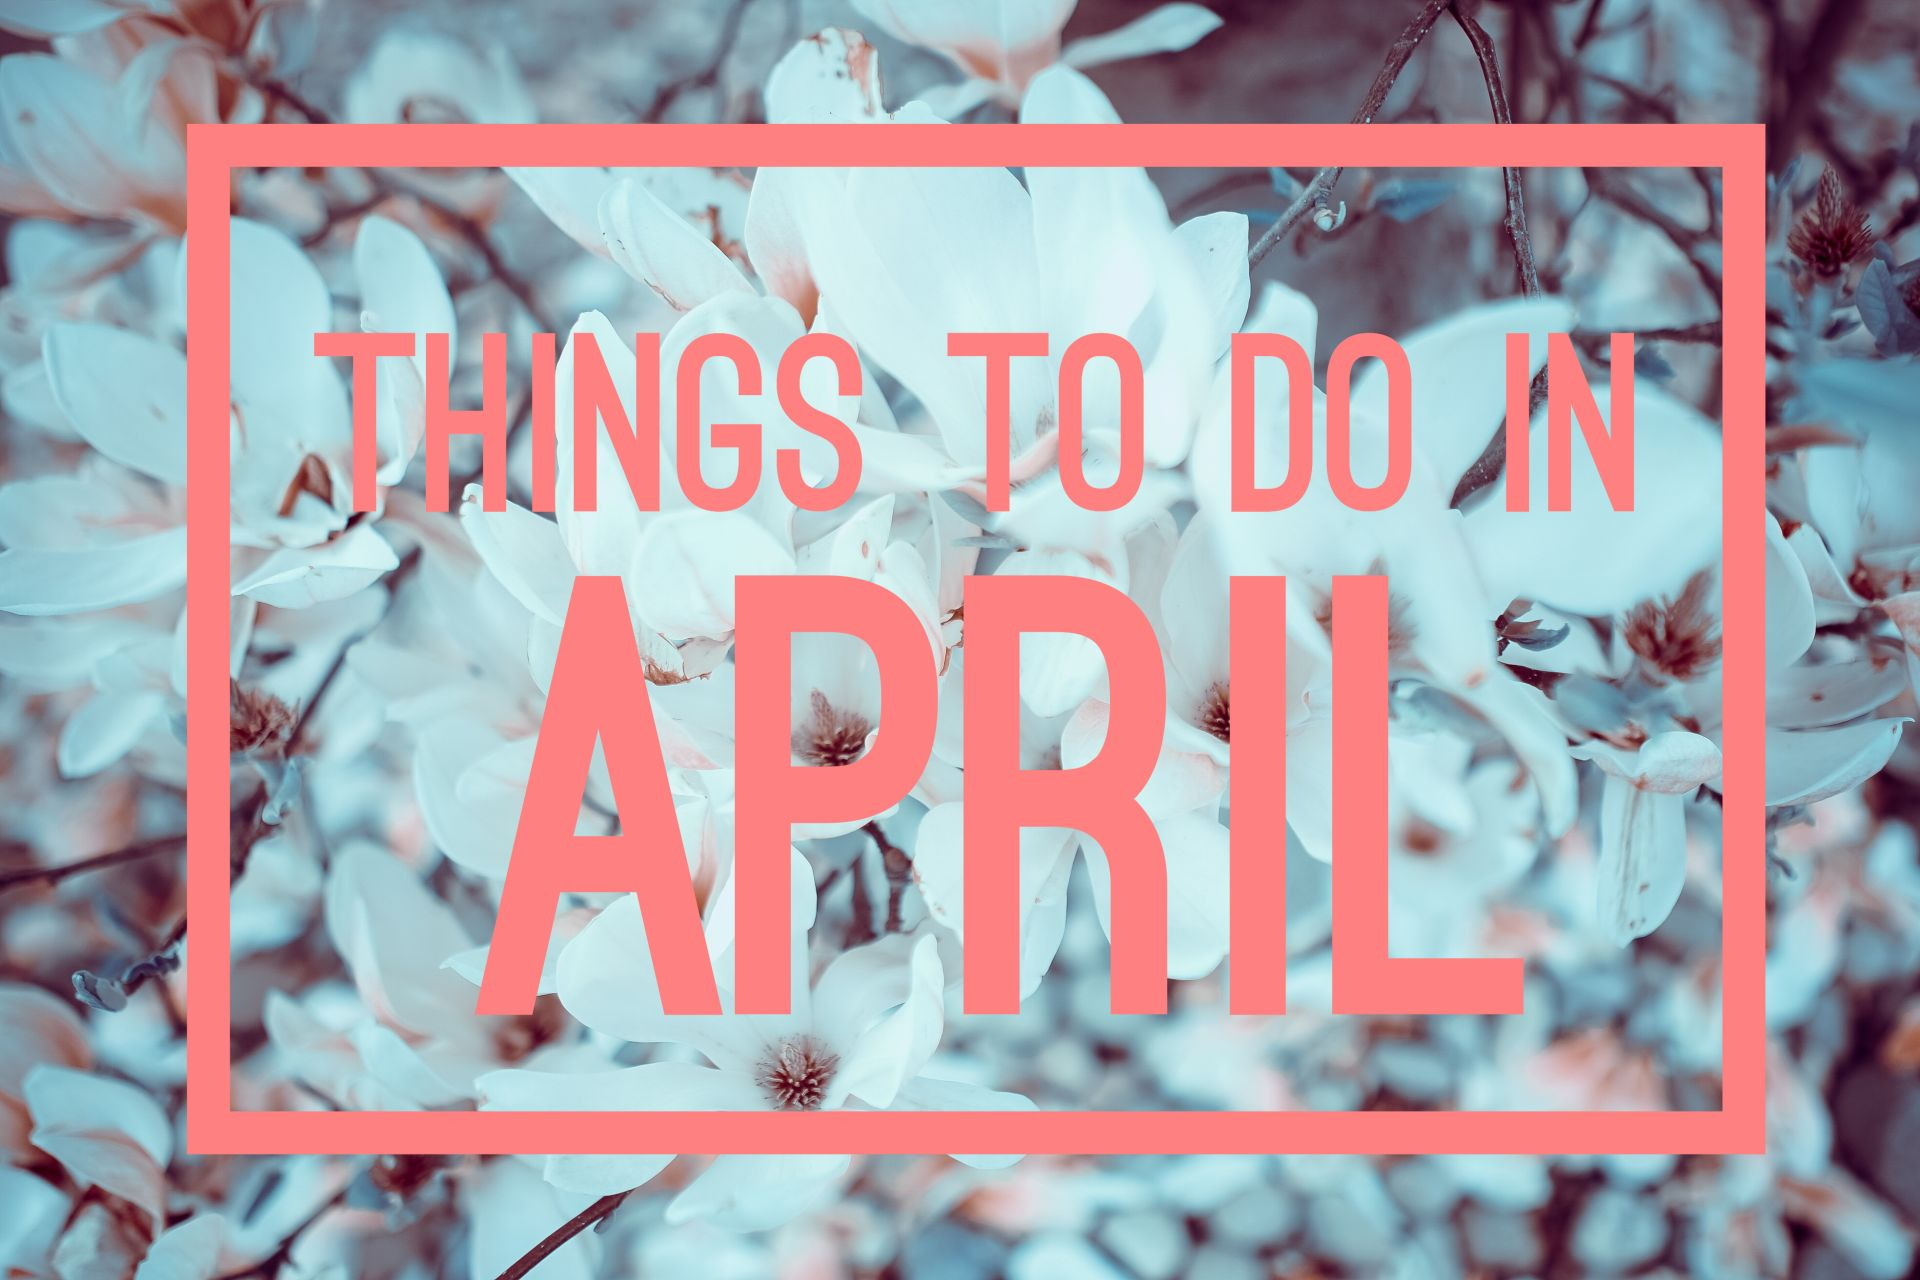 Happy Spring! Things to do in April